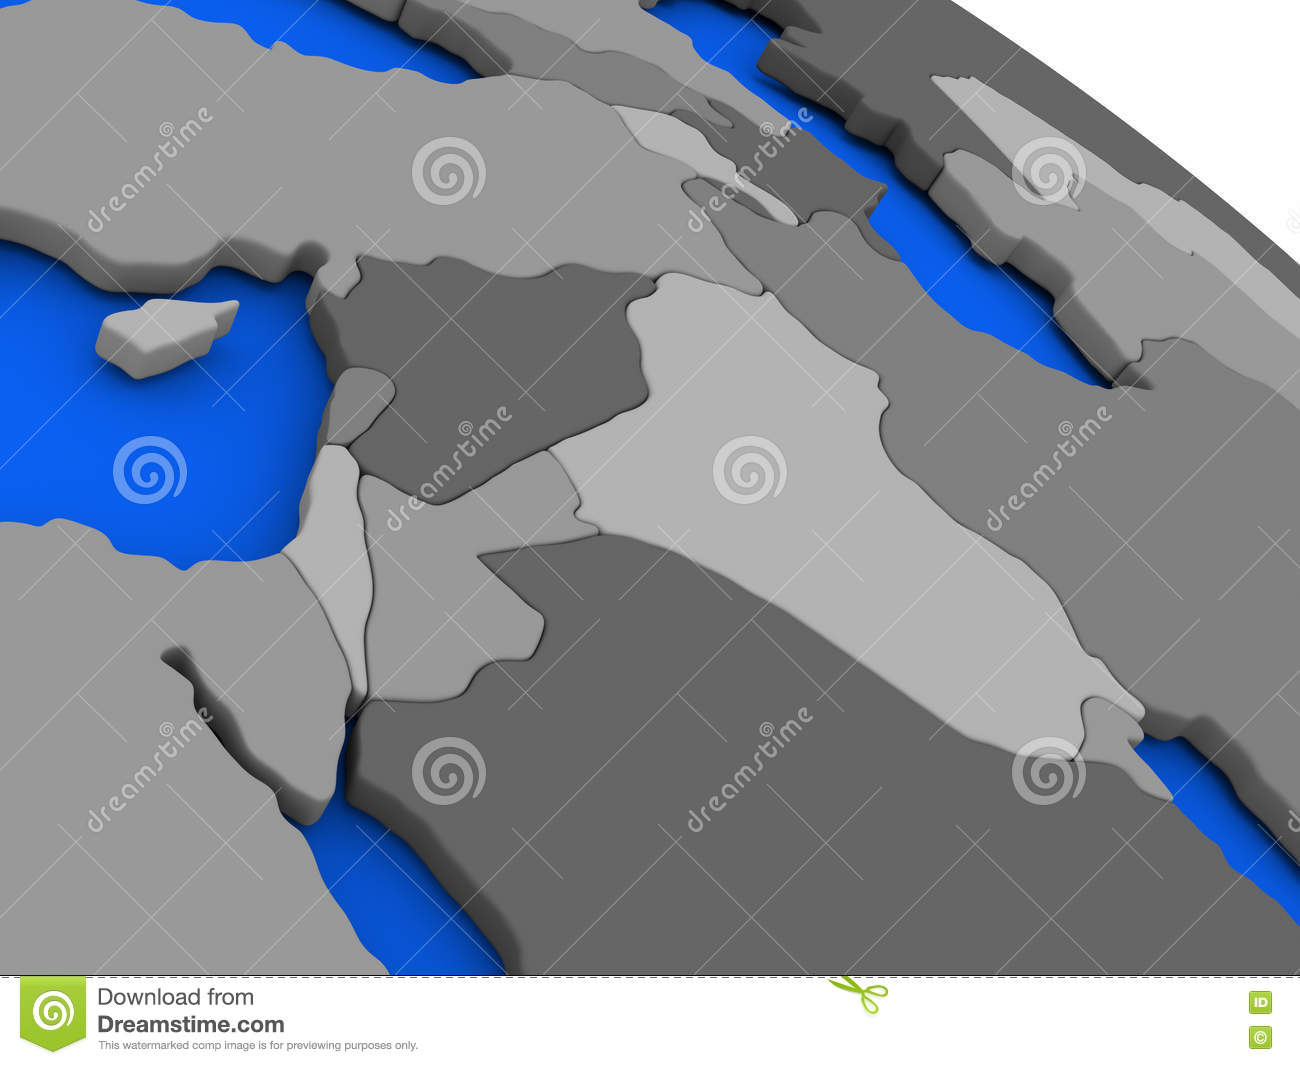 Israel lebanon jordan syria and iraq region on political eart map of israel lebanon jordan syria and iraq region on 3d model of earth with countries in various shades of grey and blue oceans 3d illustration gumiabroncs Image collections